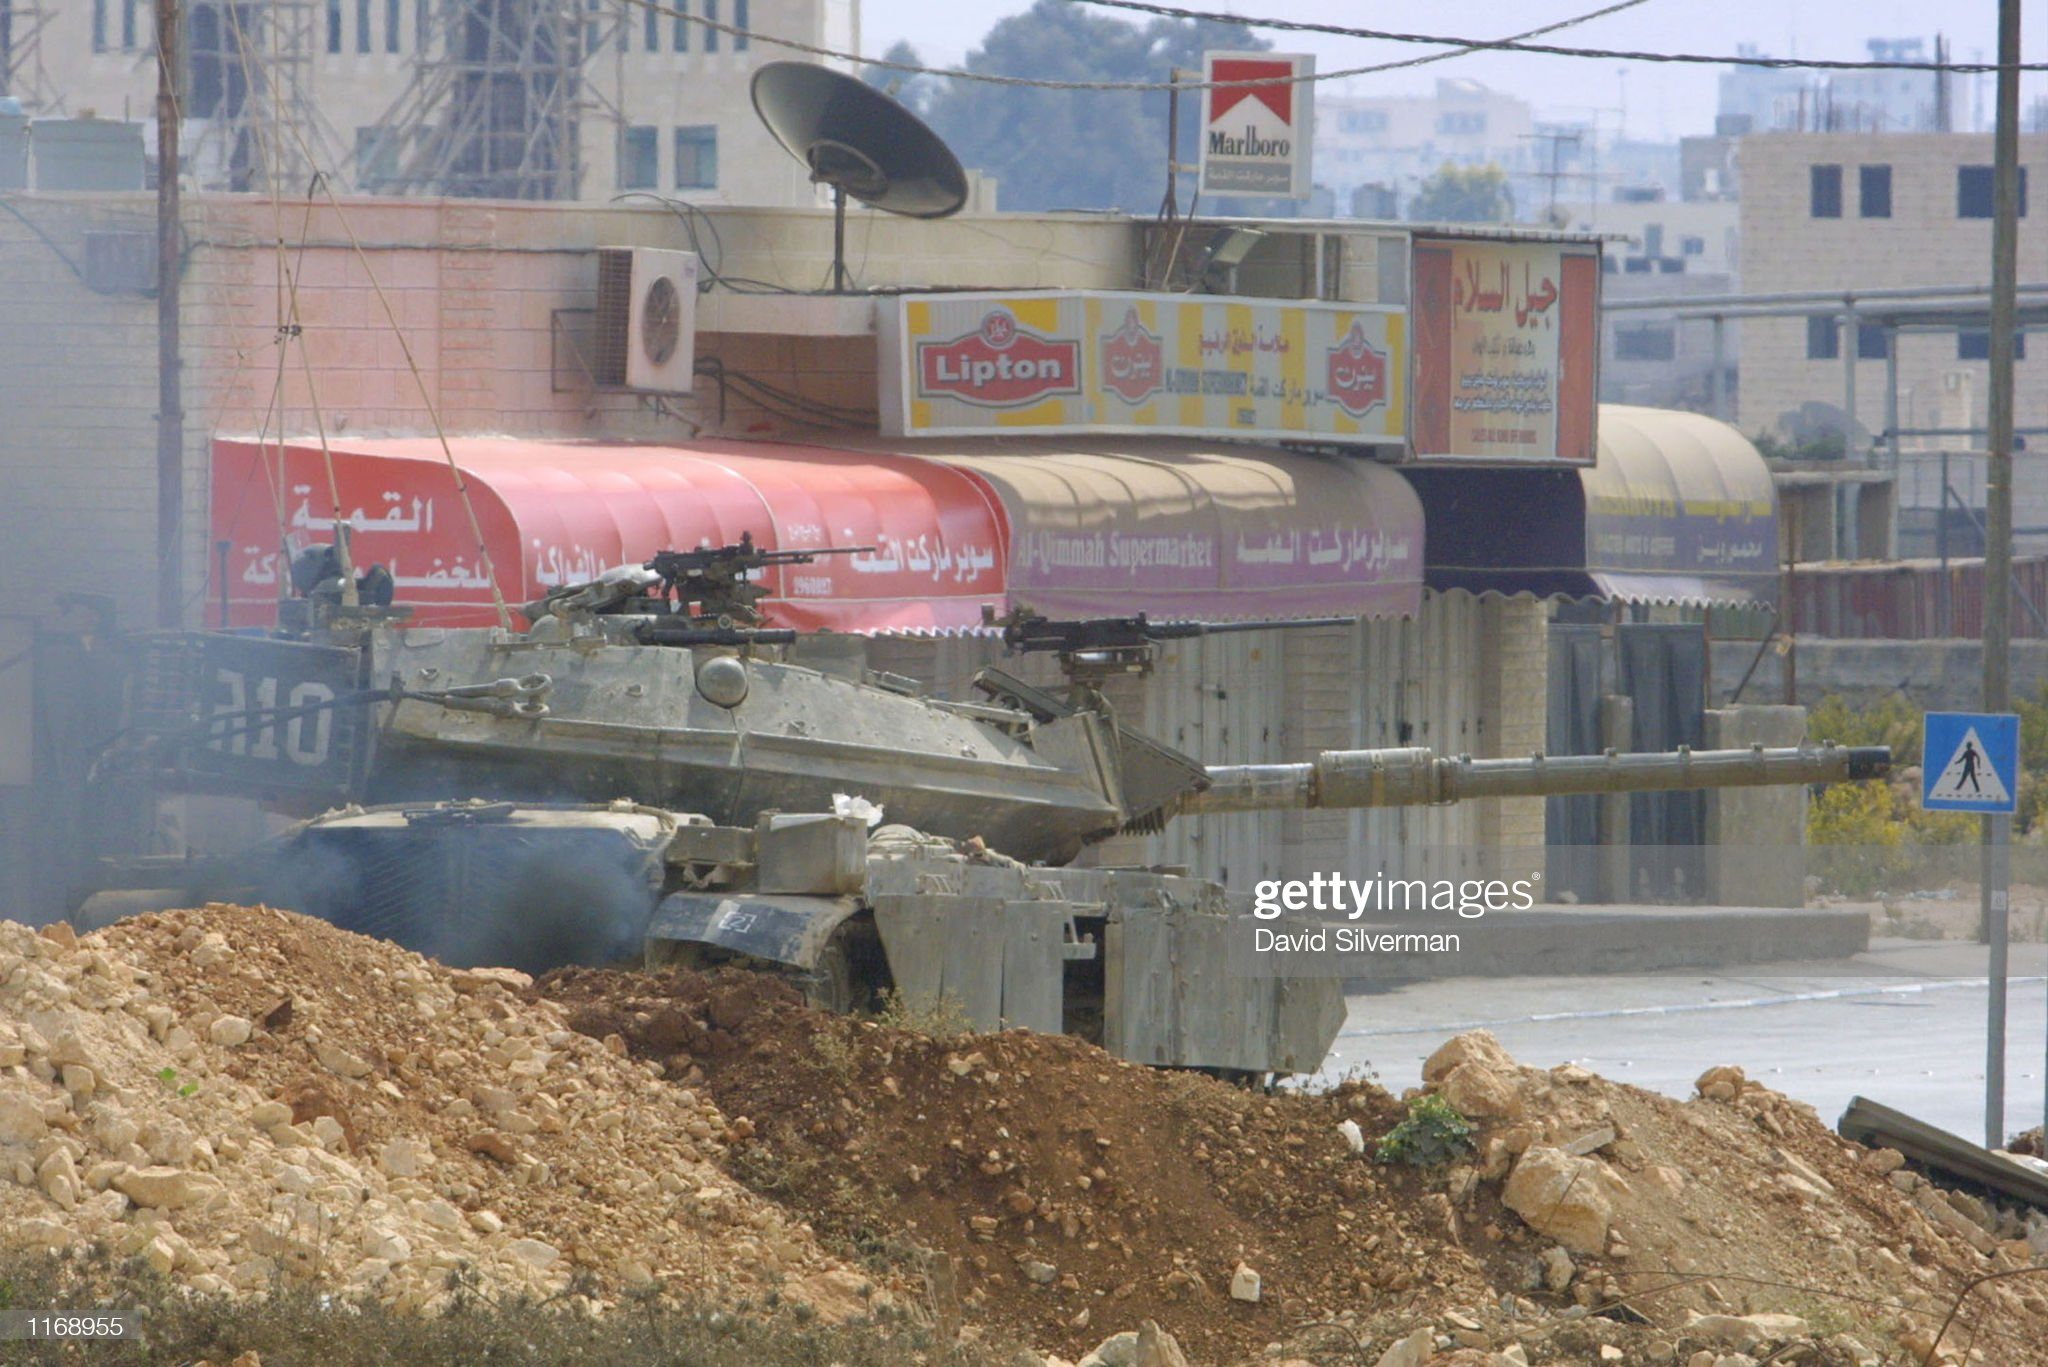 https://media.gettyimages.com/photos/israeli-tanks-take-position-october-18-2001-in-the-west-bank-town-of-picture-id1168955?s=2048x2048